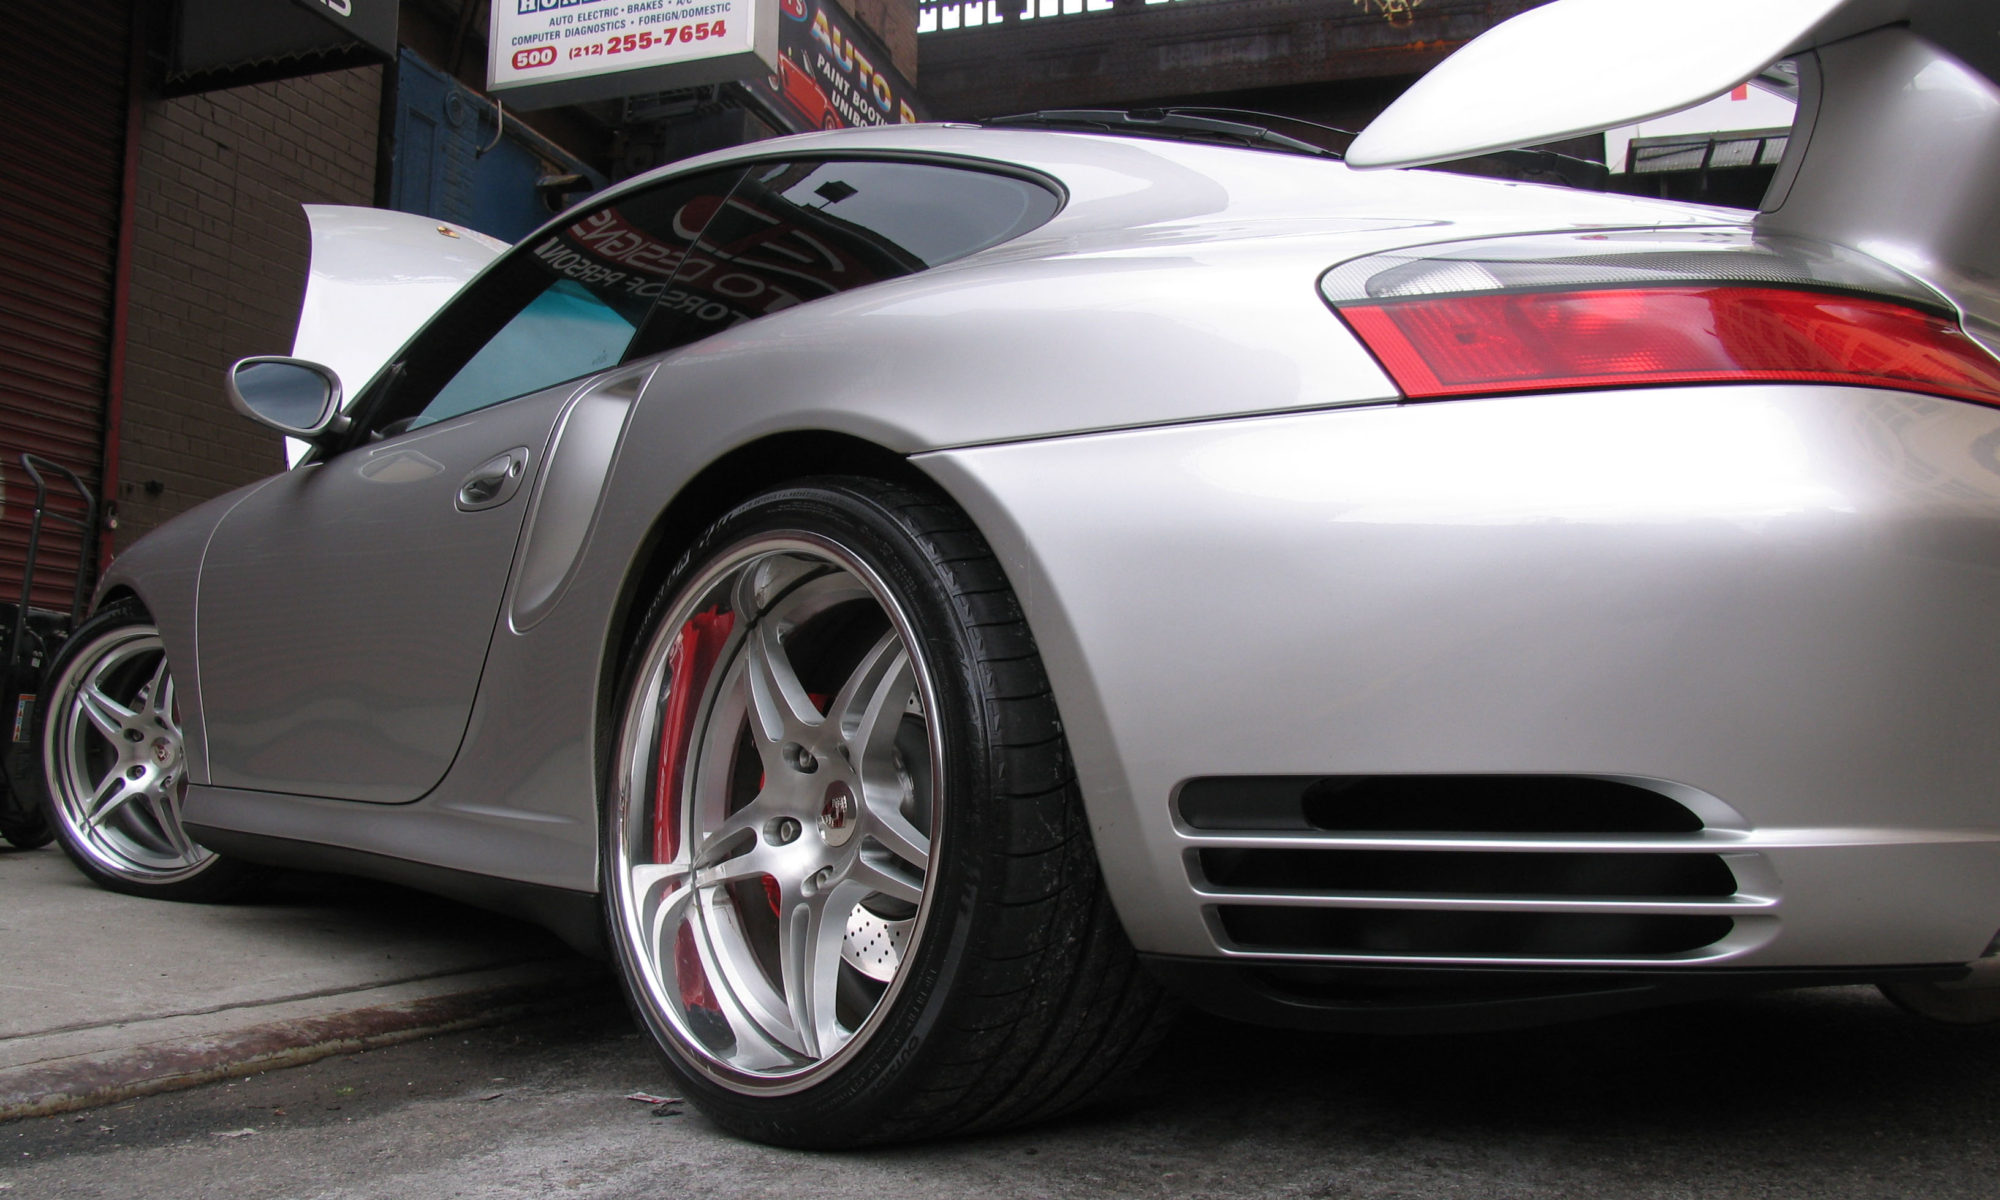 911 turbo coupe. Services: Rear wing install, custom wheel and tire package and ceramic window tint.